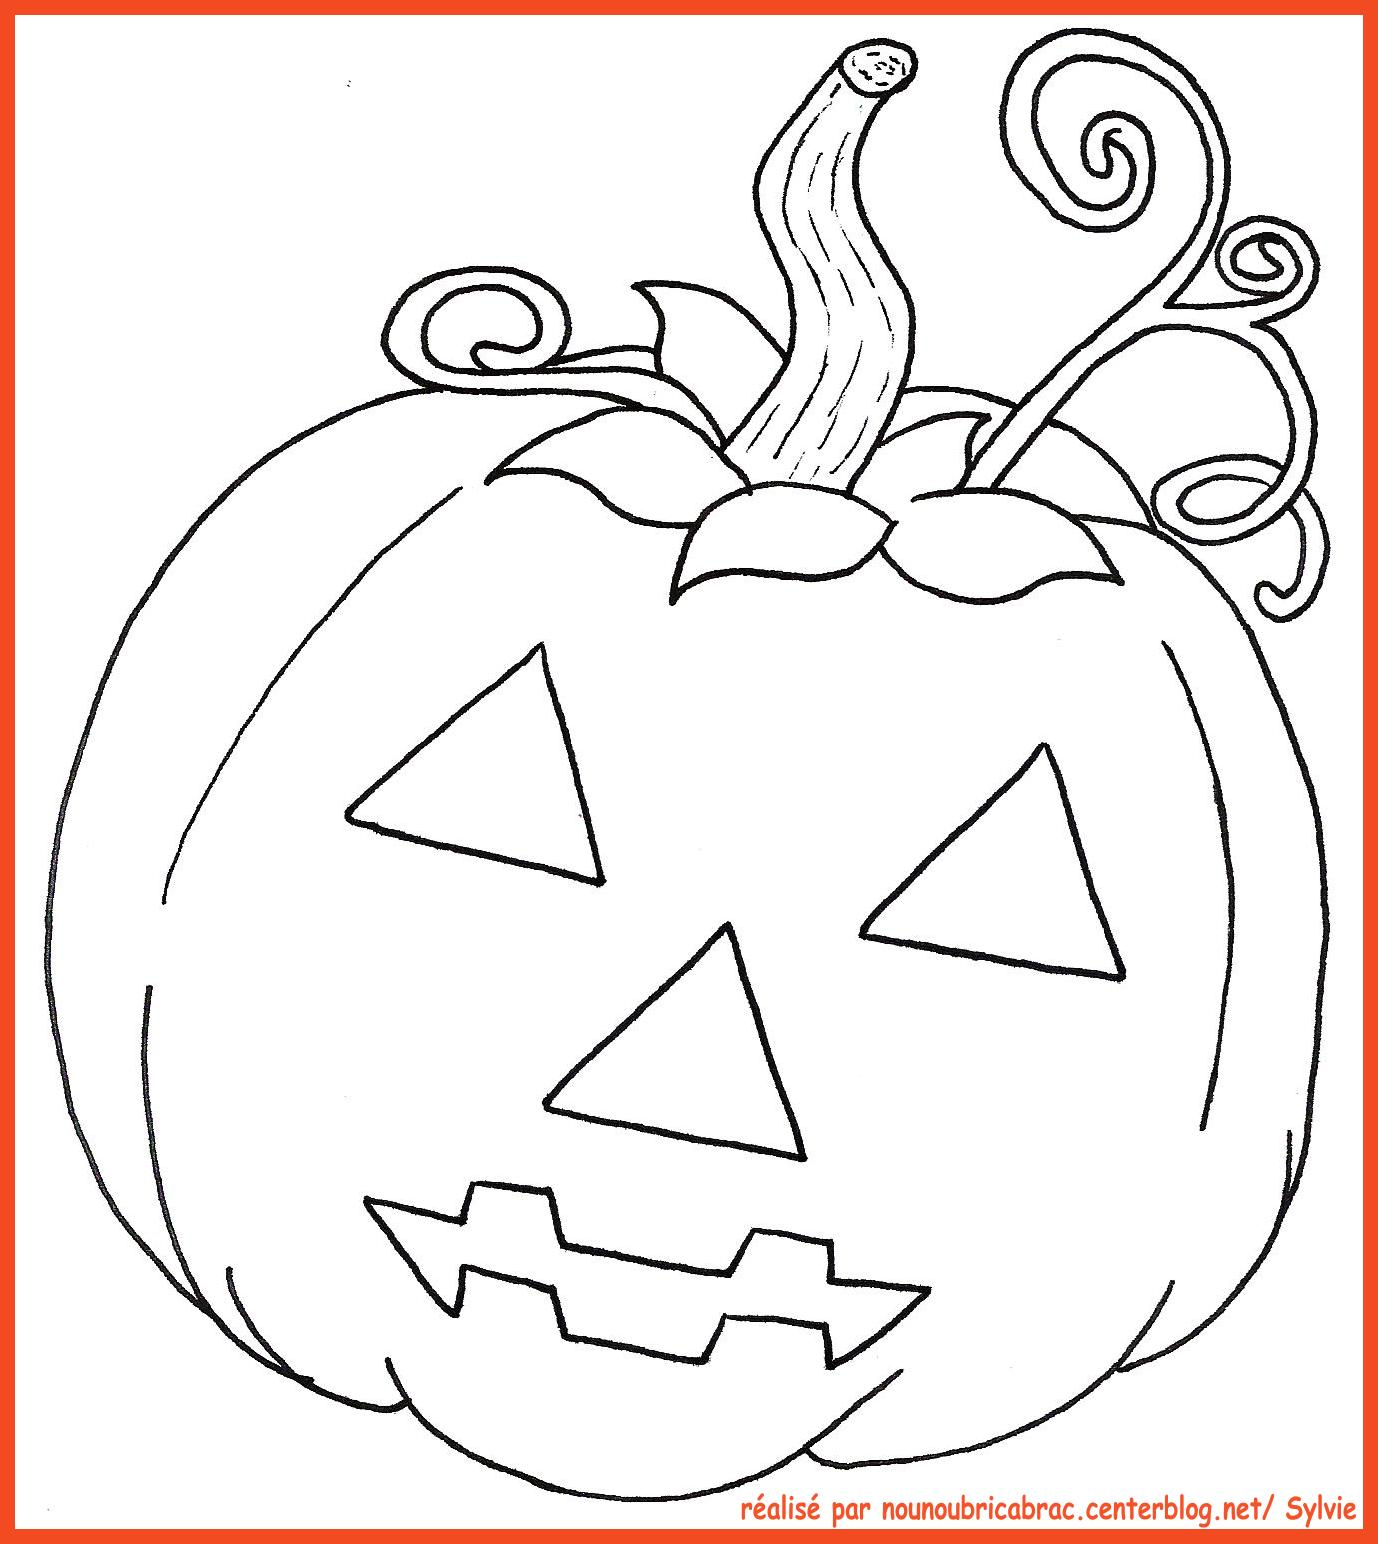 126 dessins de coloriage halloween imprimer - Coloriage masque halloween ...